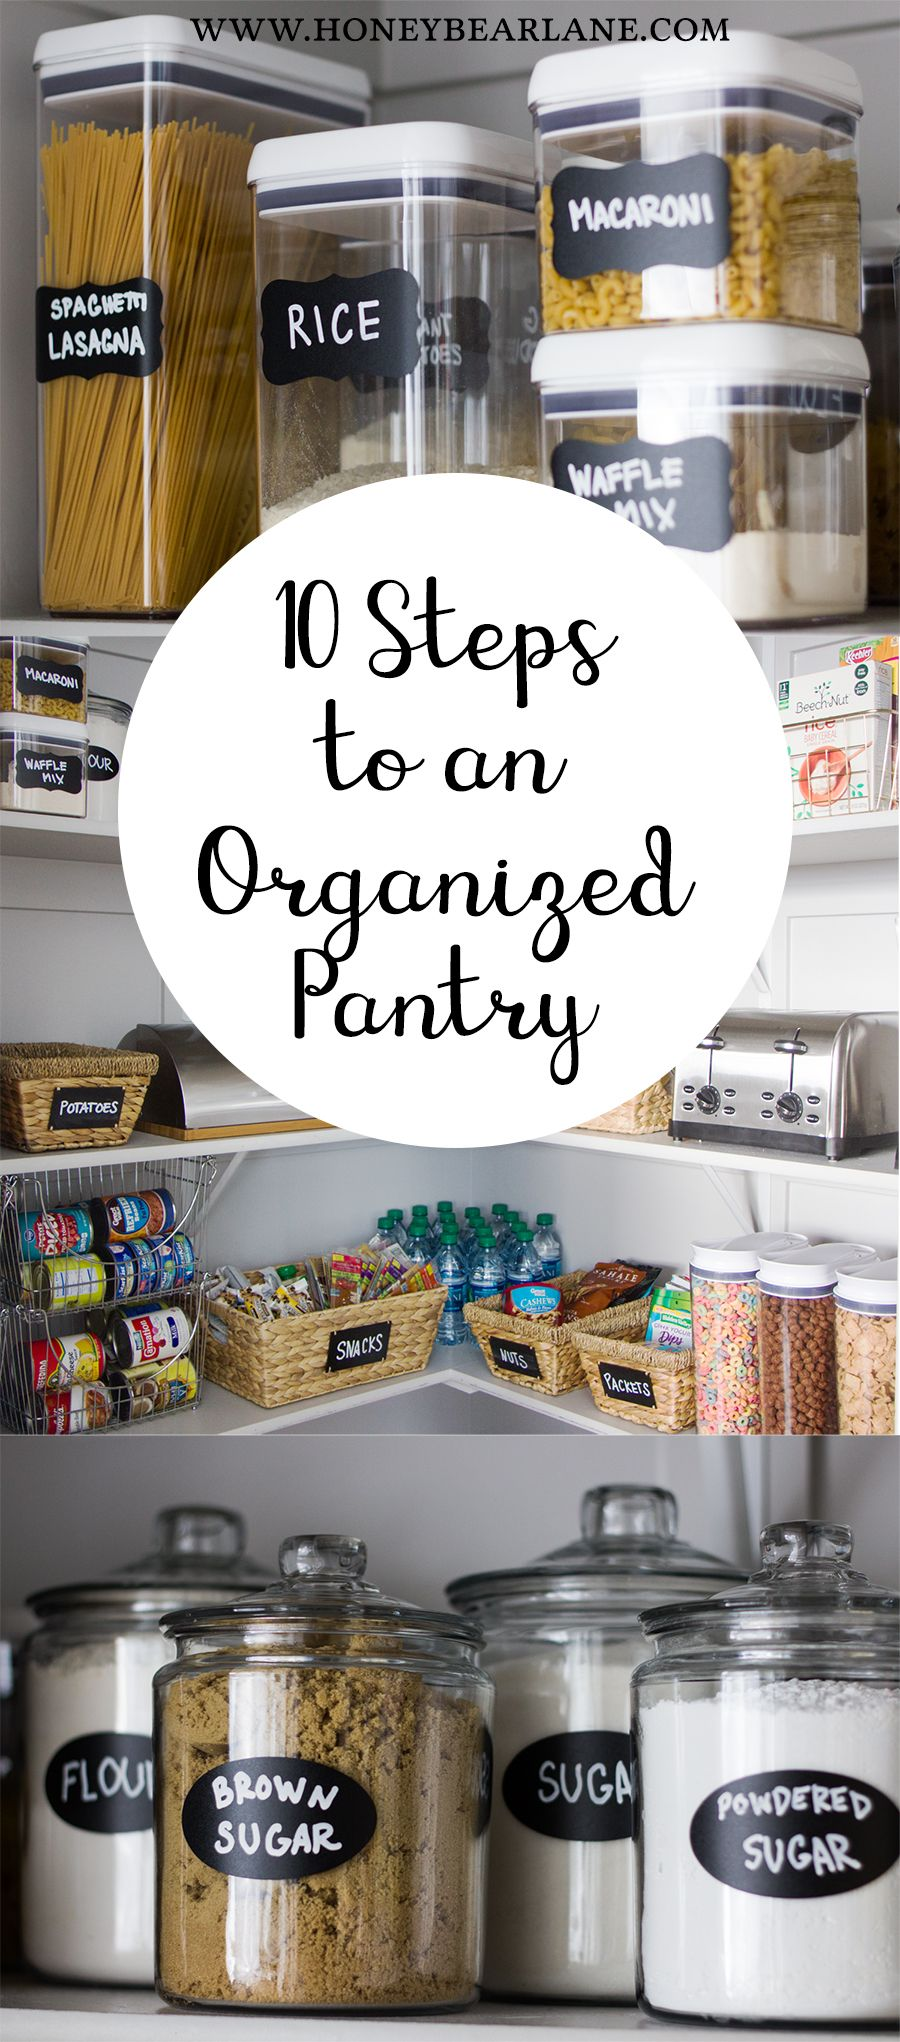 Space in the kitchen by adding shelves and glass canisters with seals - 10 Steps To An Organized Pantry